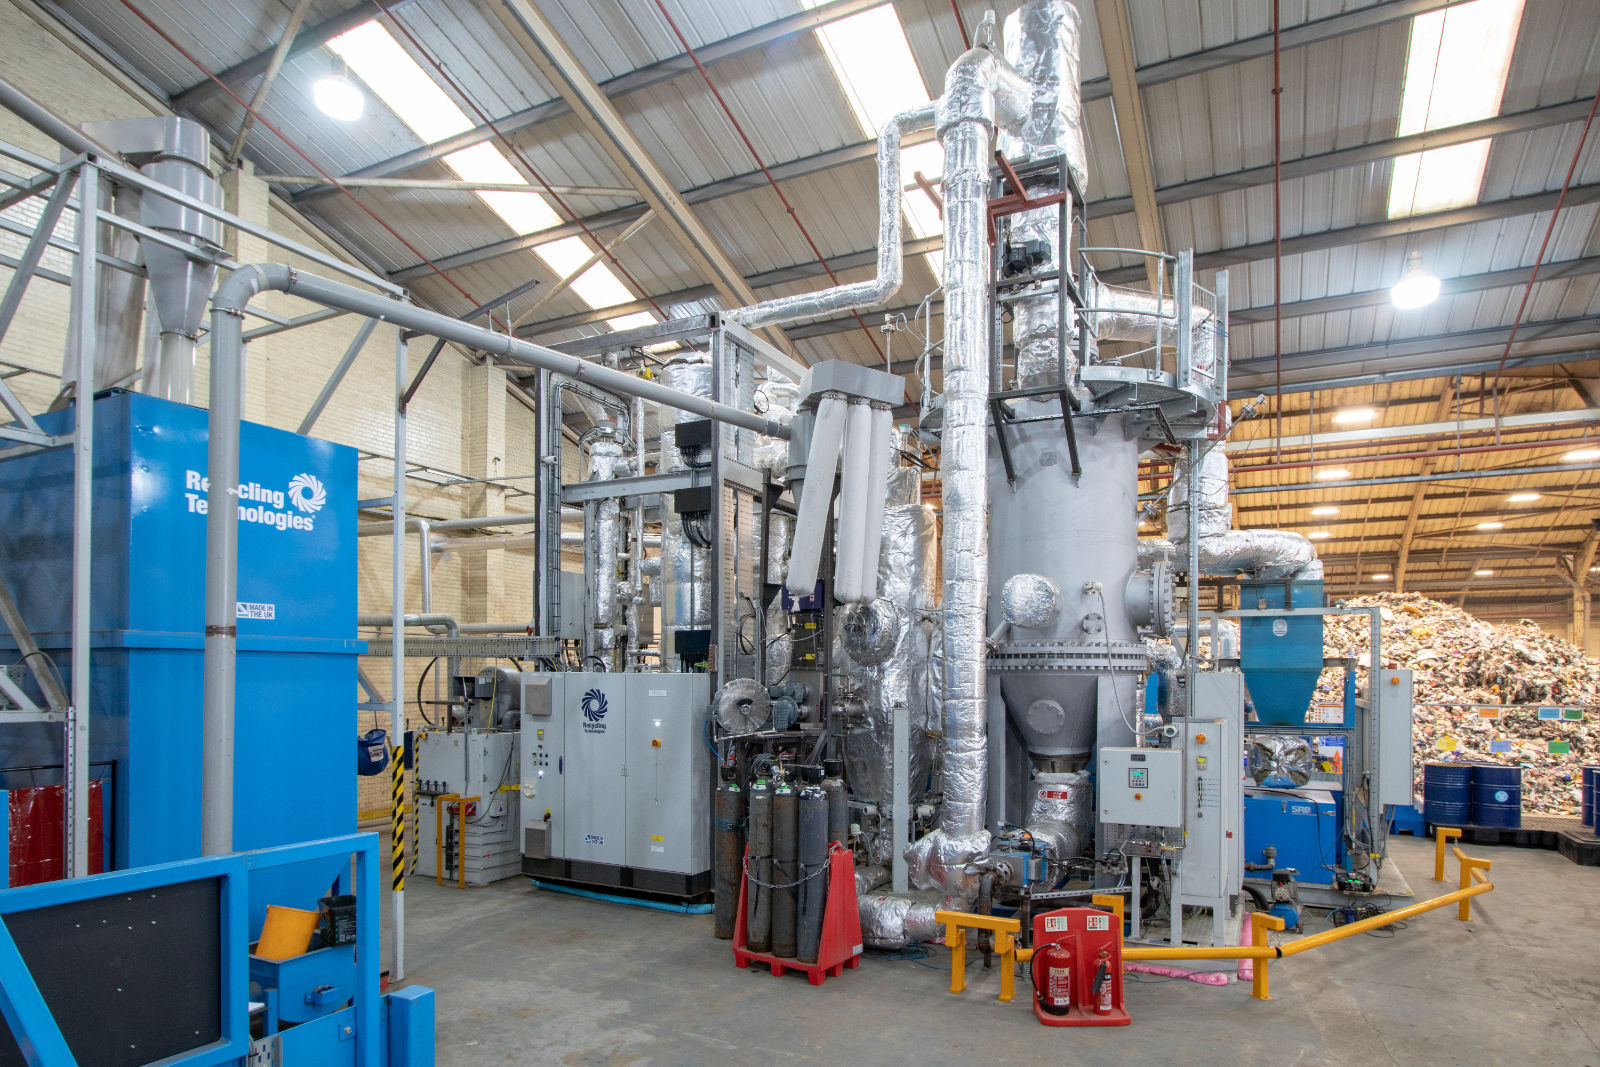 Recycling Technologies is setting up an assembly facility in Swindon to build up to 200 machines per year to meet anticipated demand for plastic recycling (Image: Recycling Technologies)